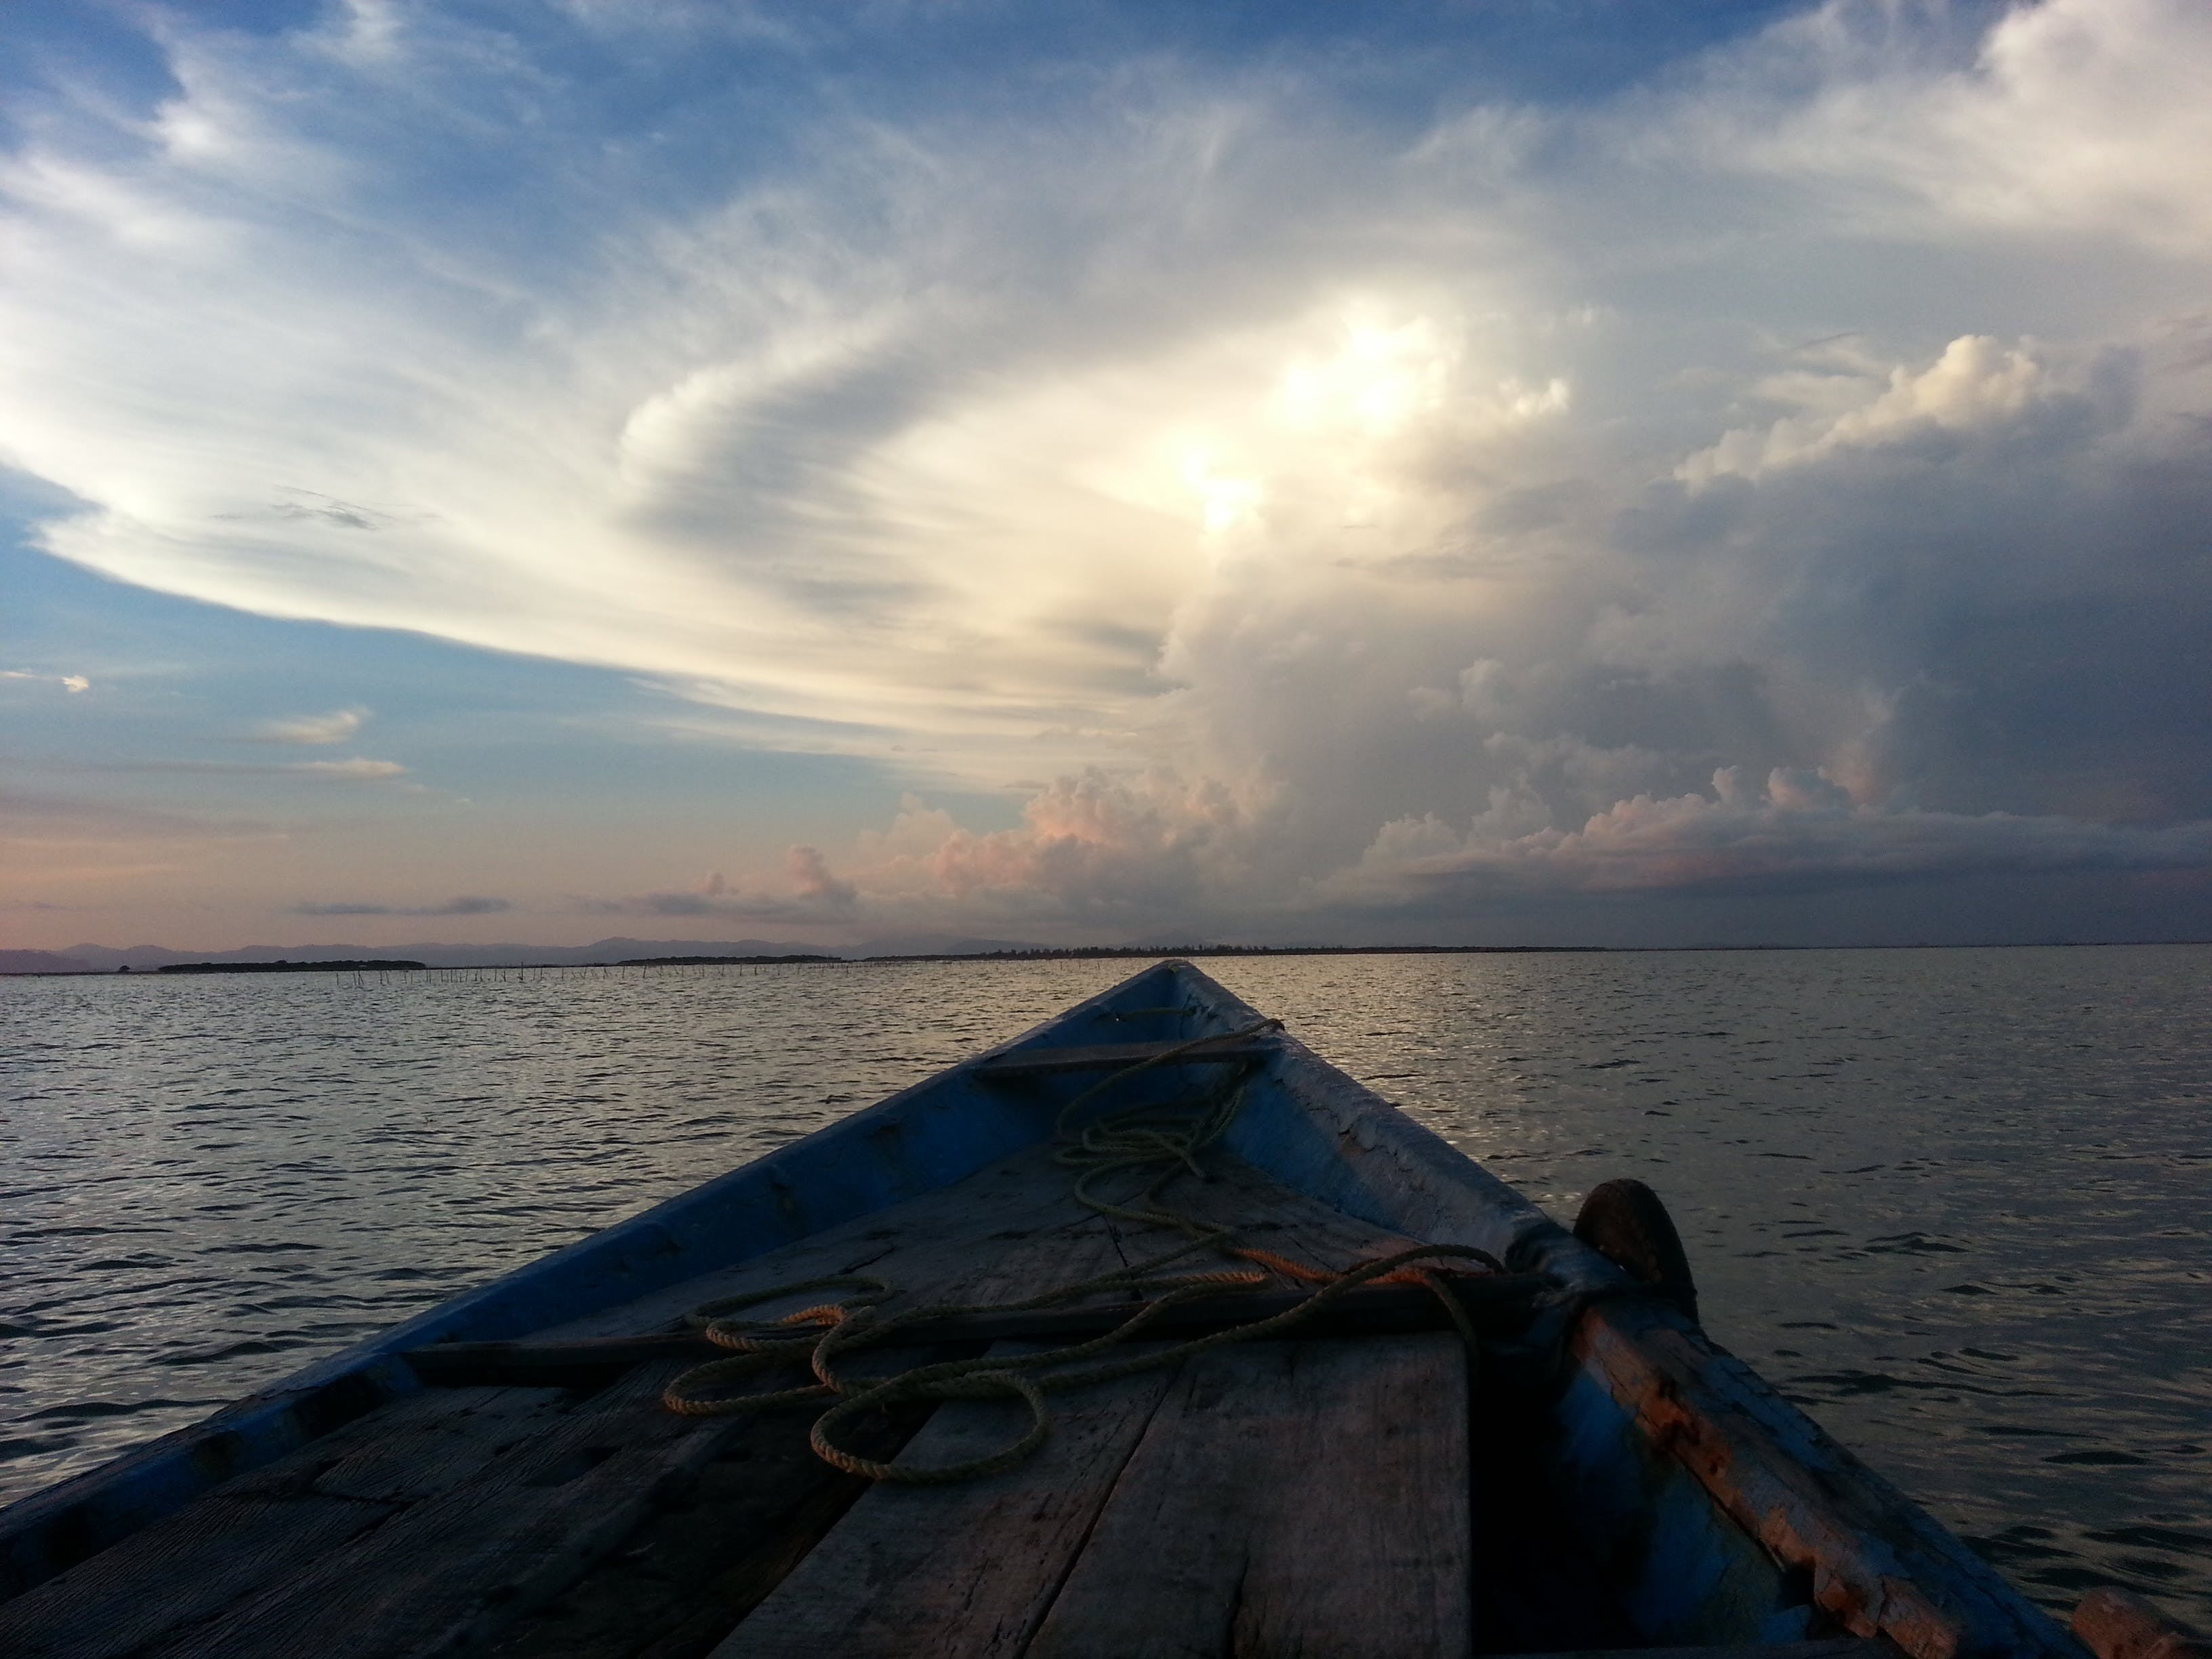 Blue Rowboat on Water Under White Clouds during Daytime